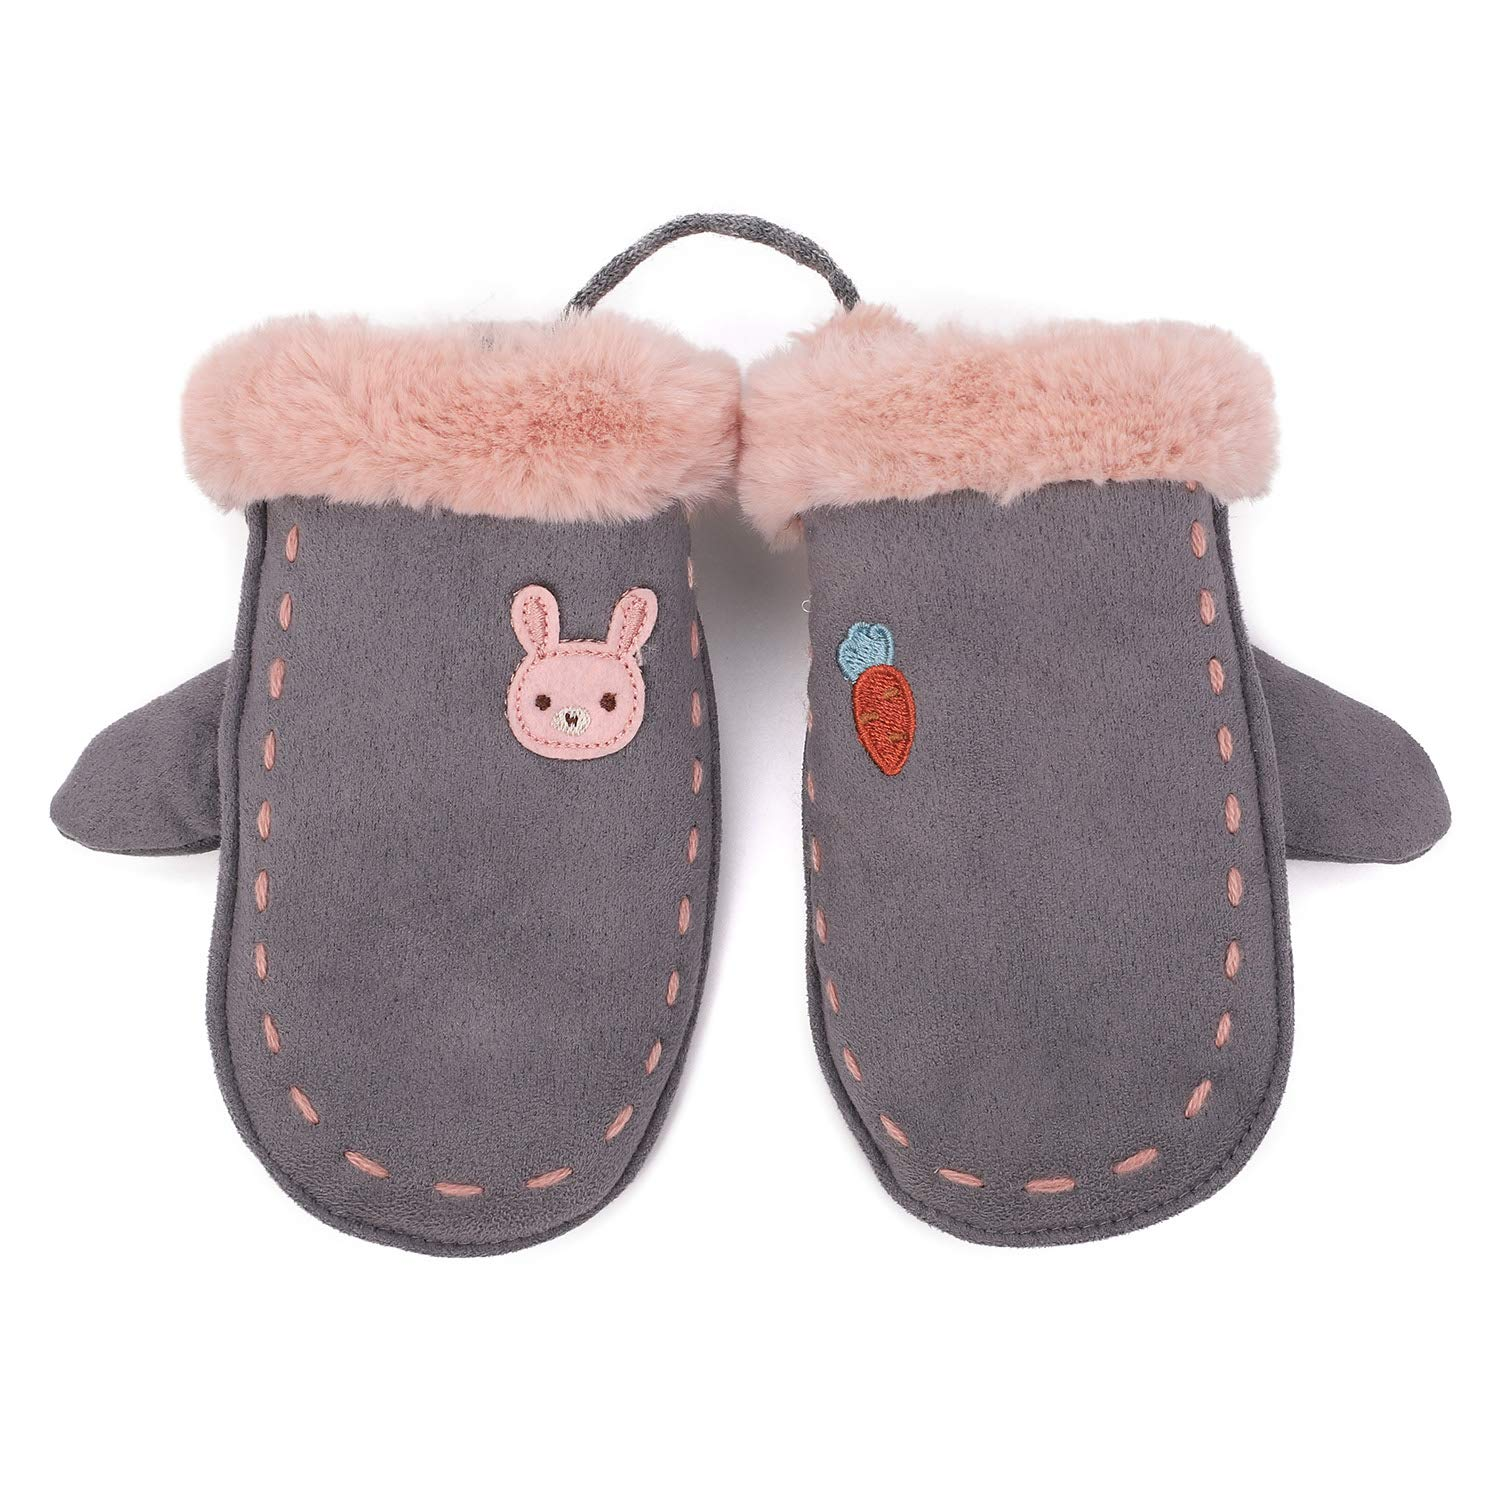 Flammi Kids Winter Plush-lined Suede Mittens with String F Flammi